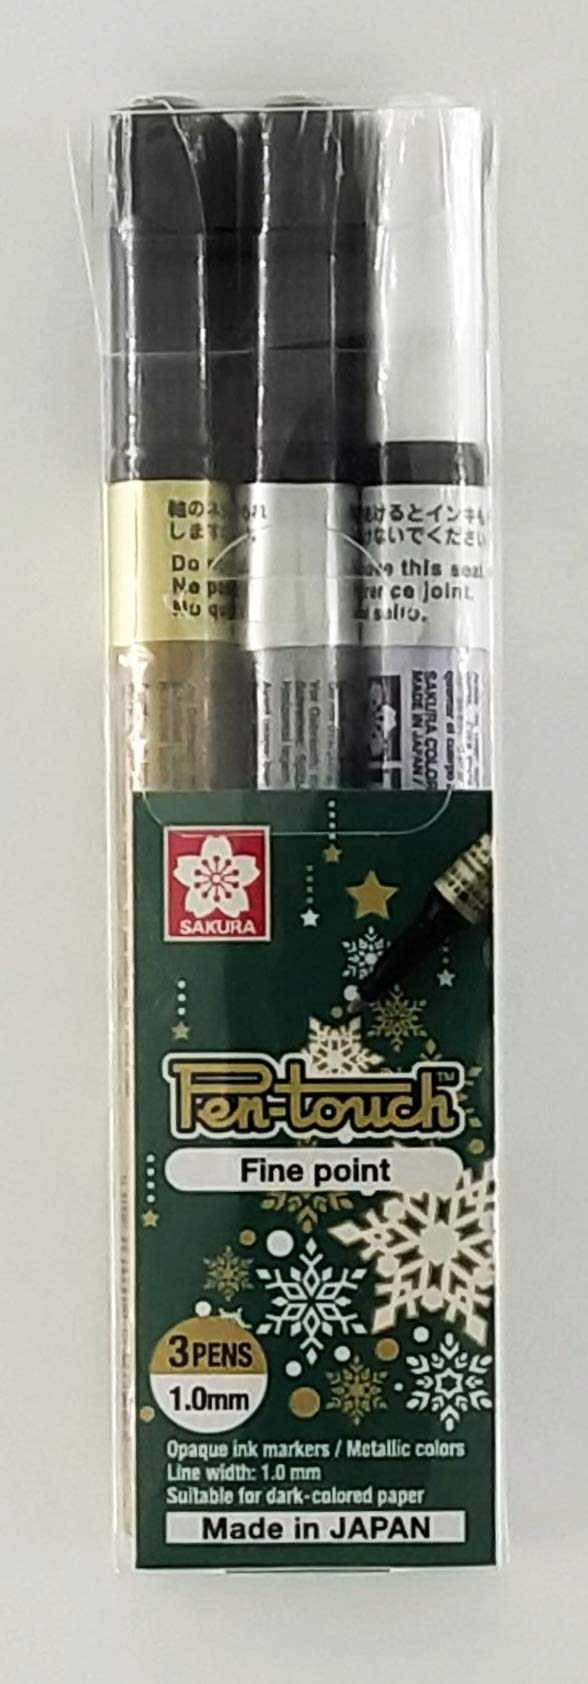 Sakura Pen-touch Permanent Markers - Pack of 3 markers - Gold, Silver & White (Fine Point) (B07RQXPMMH) Amazon Price History, Amazon Price Tracker